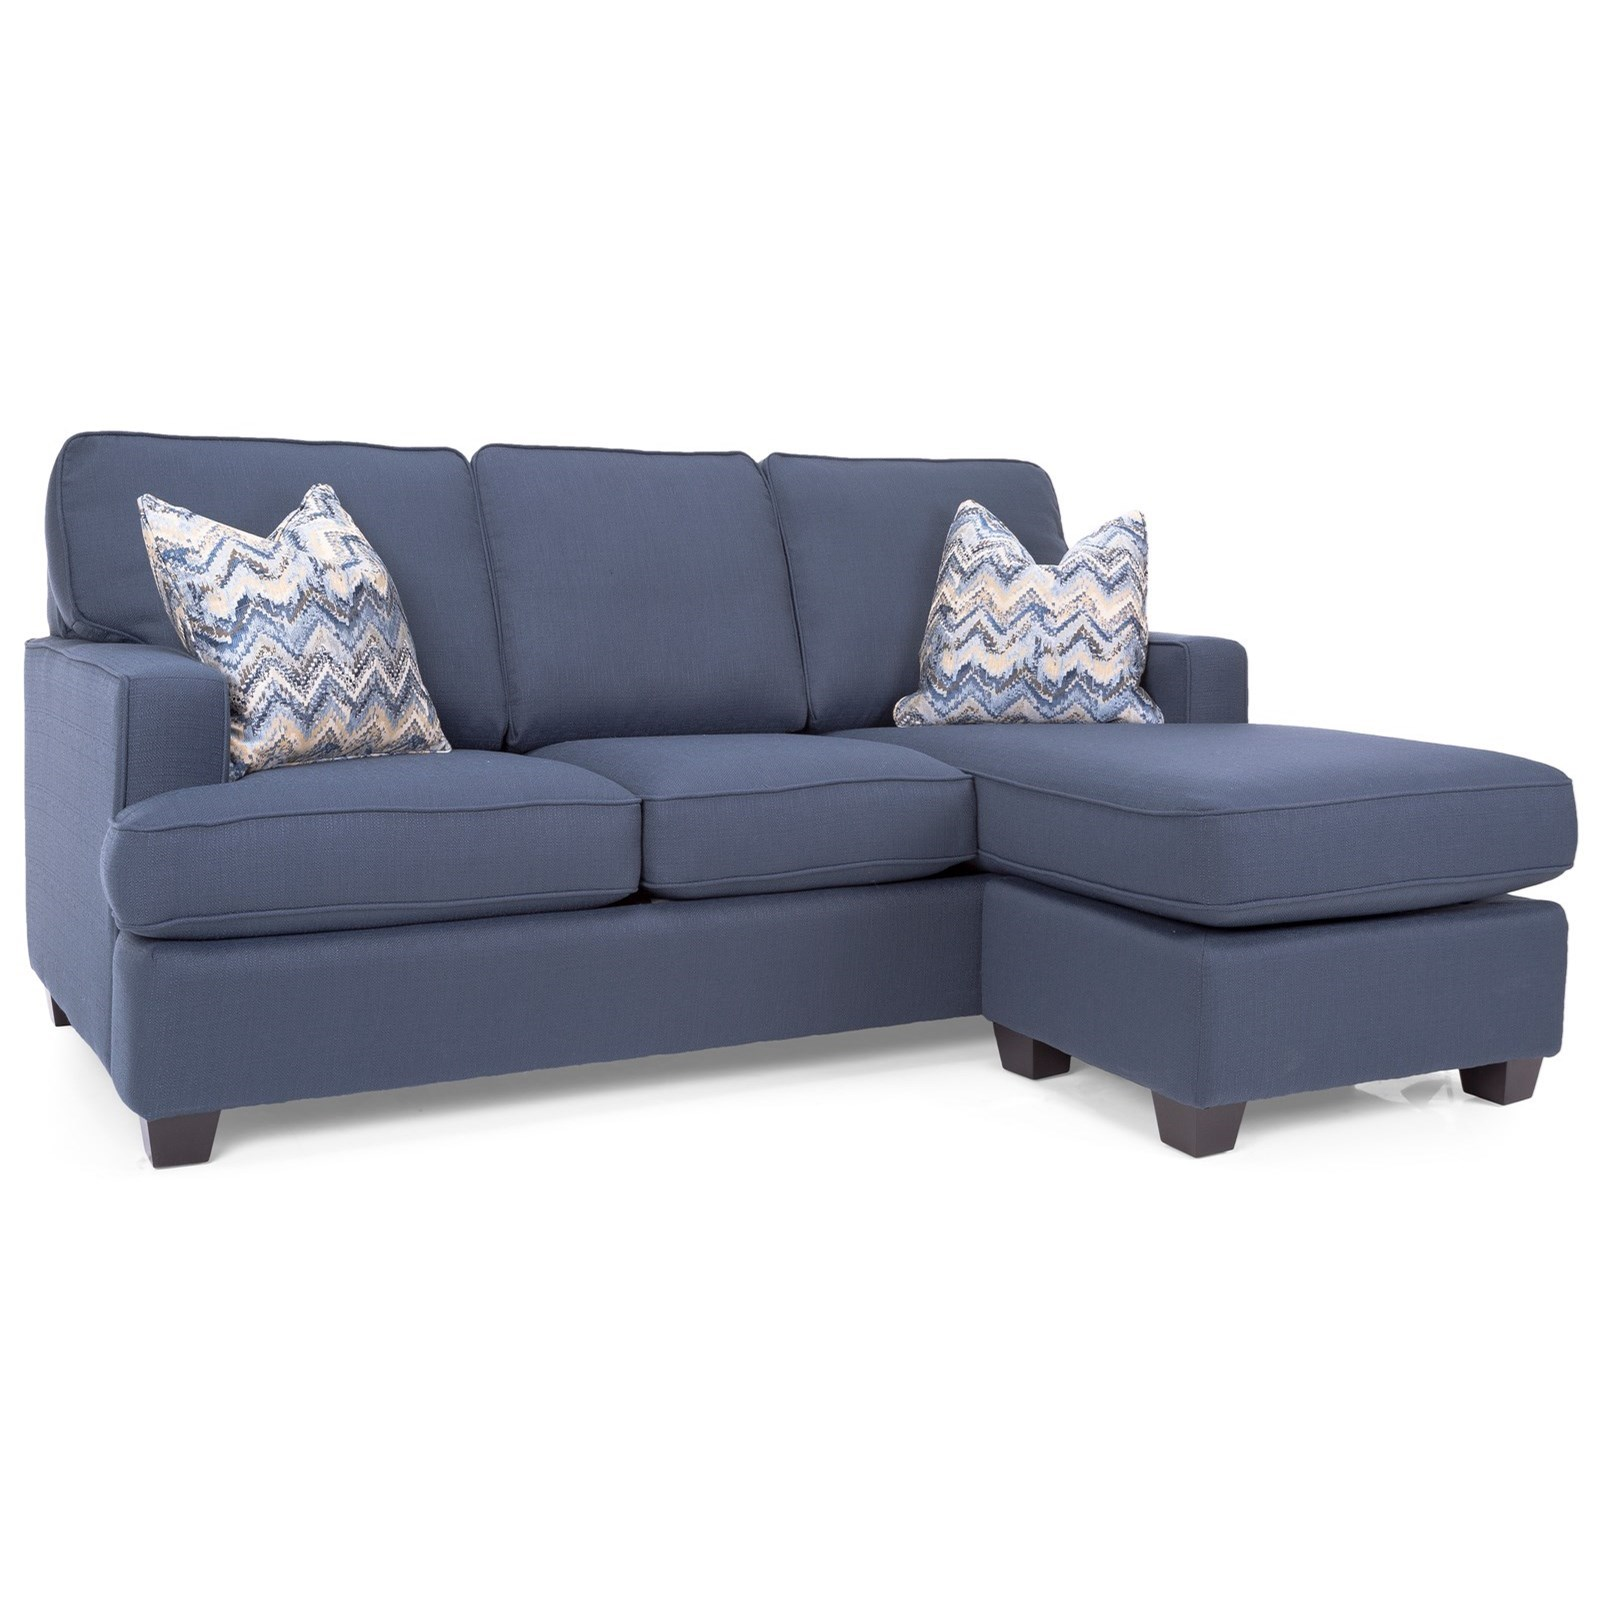 2785 Sofa with Chaise by Decor-Rest at Stoney Creek Furniture